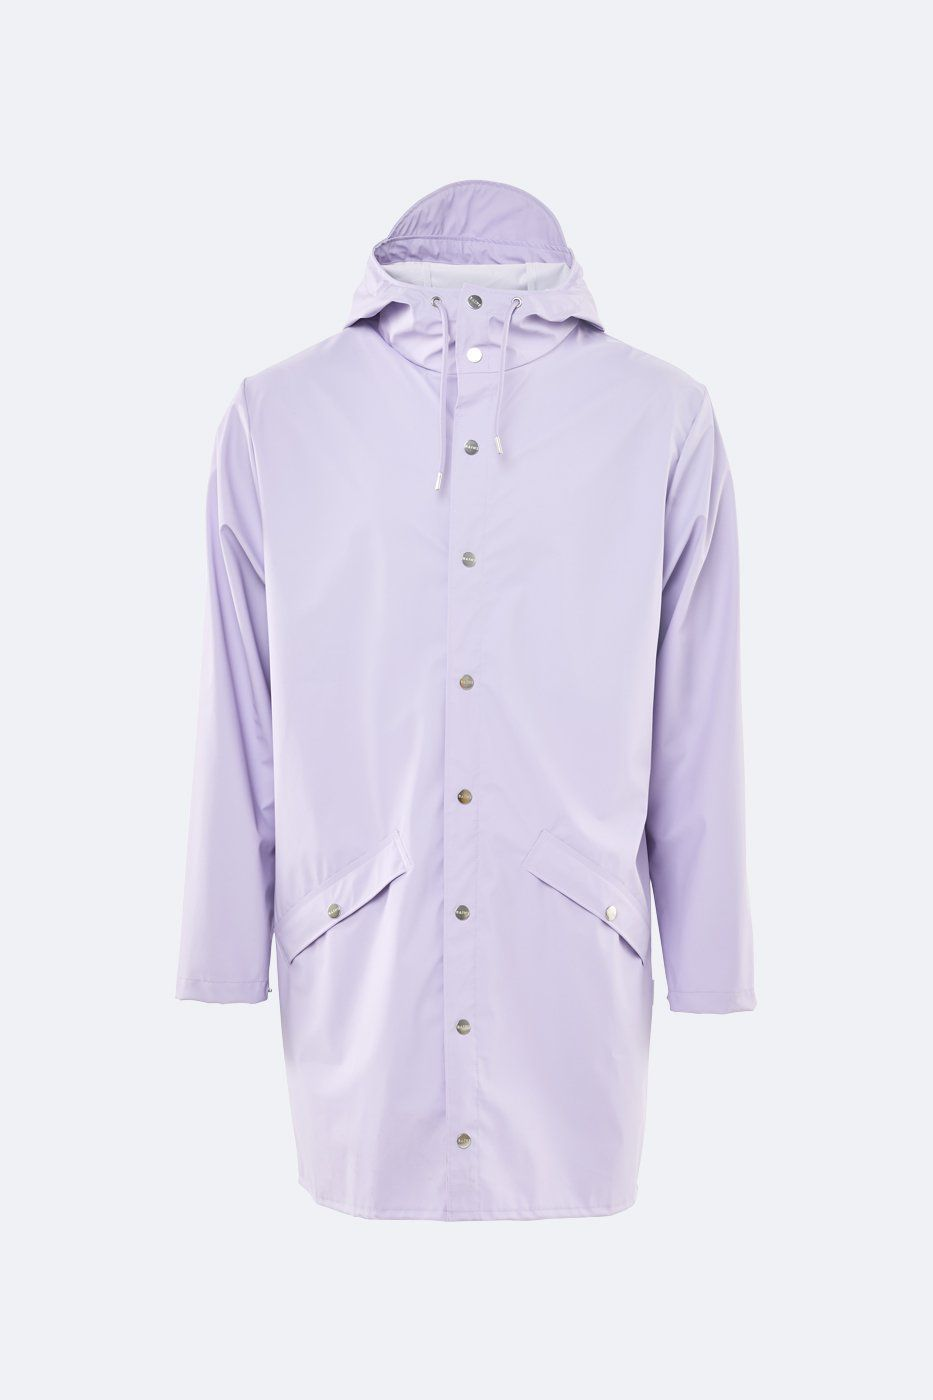 Long Jacket Rains rains.com $125.00 SHOP NOW This lilac jacket will have you wishing for a rainy day.